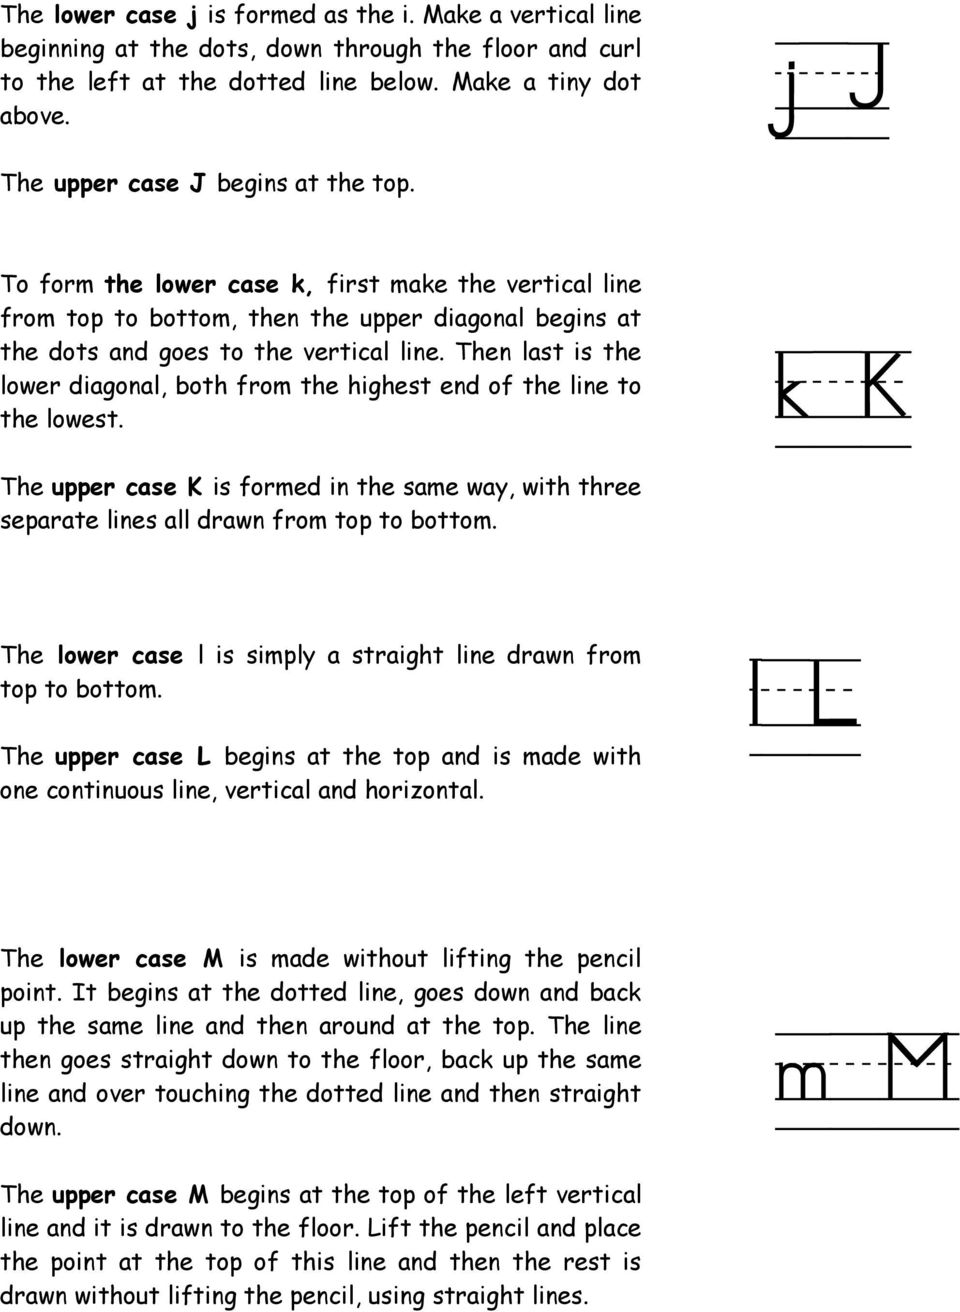 Then last is the lower diagonal, both from the highest end of the line to the lowest. k/k The upper case K is formed in the same way, with three separate lines all drawn from top to bottom.